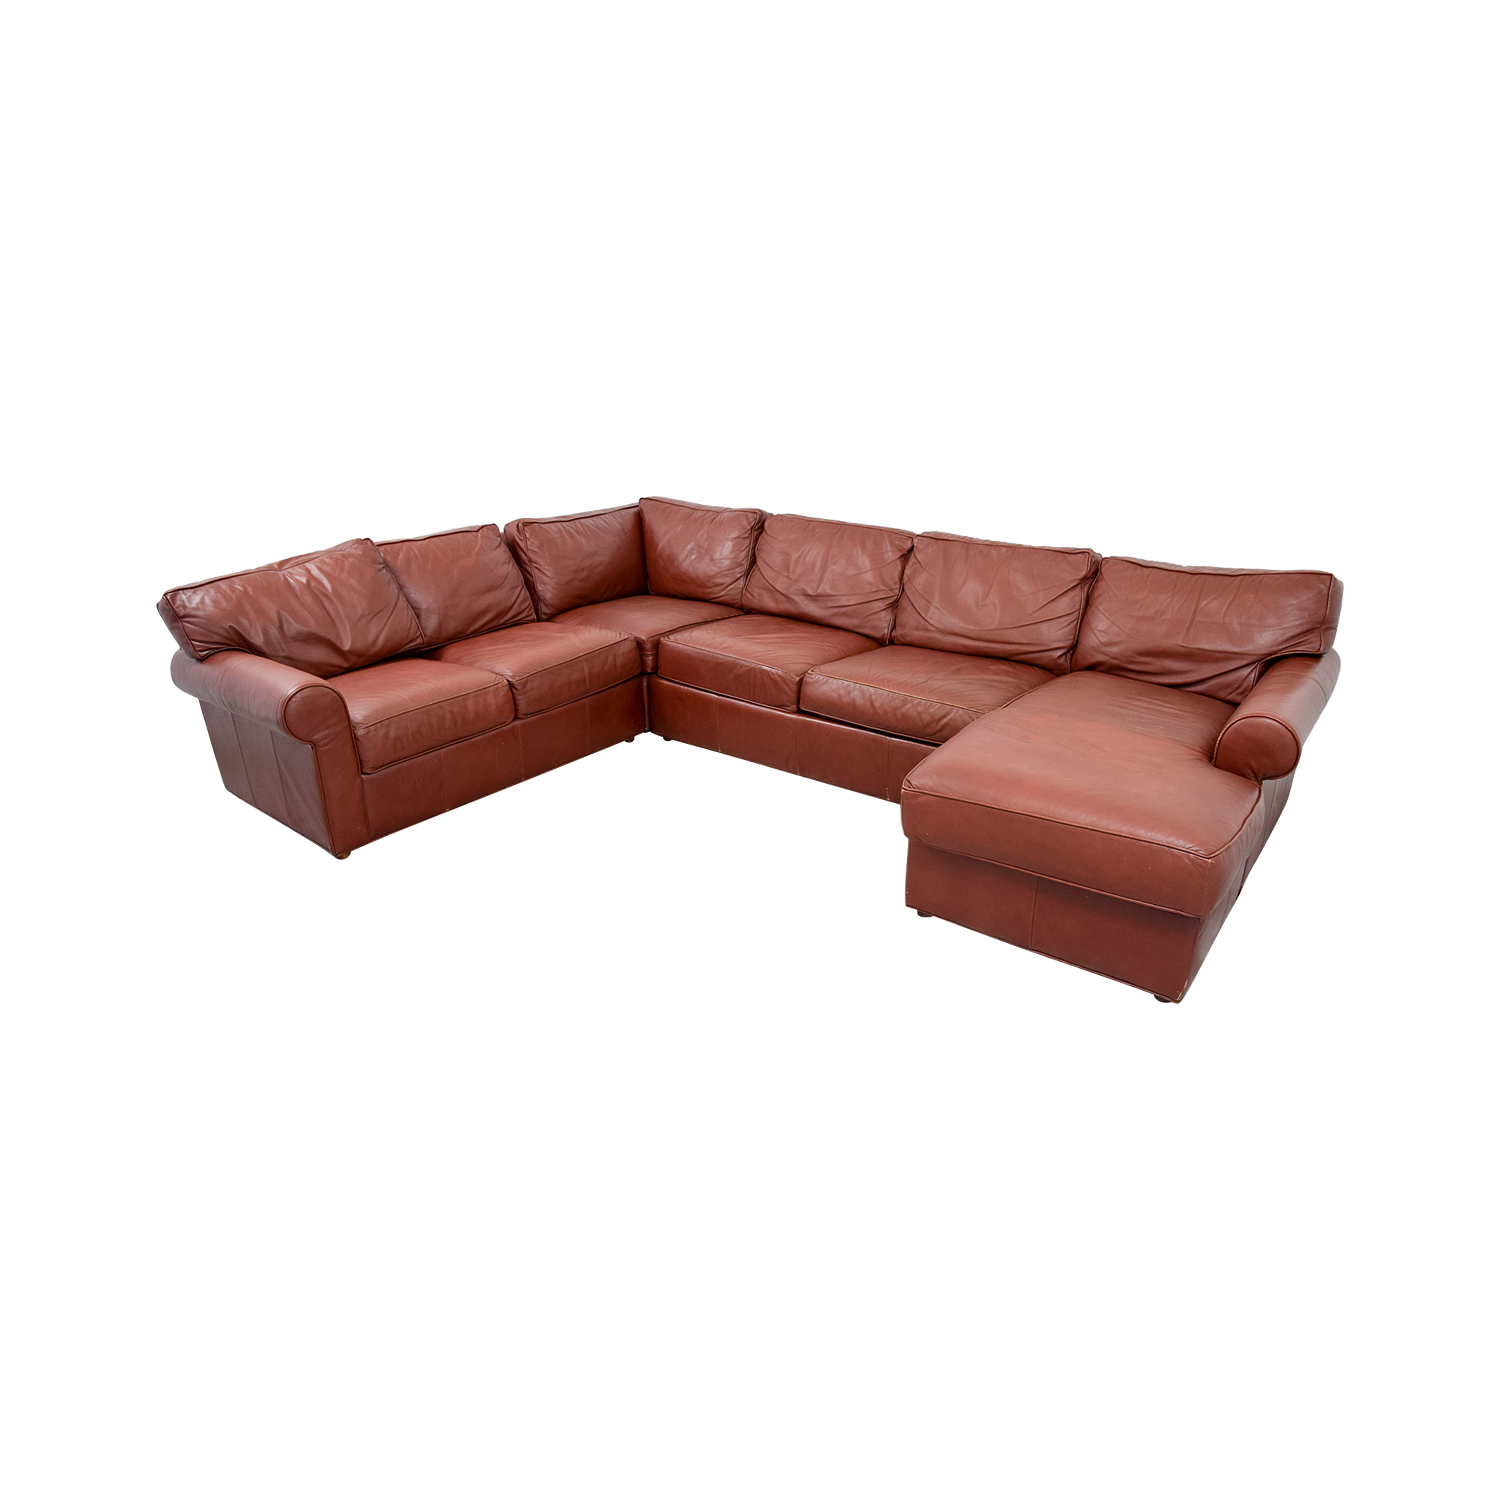 87% OFF - Ethan Allen Ethan Allen Burgundy Leather Sectional with ...